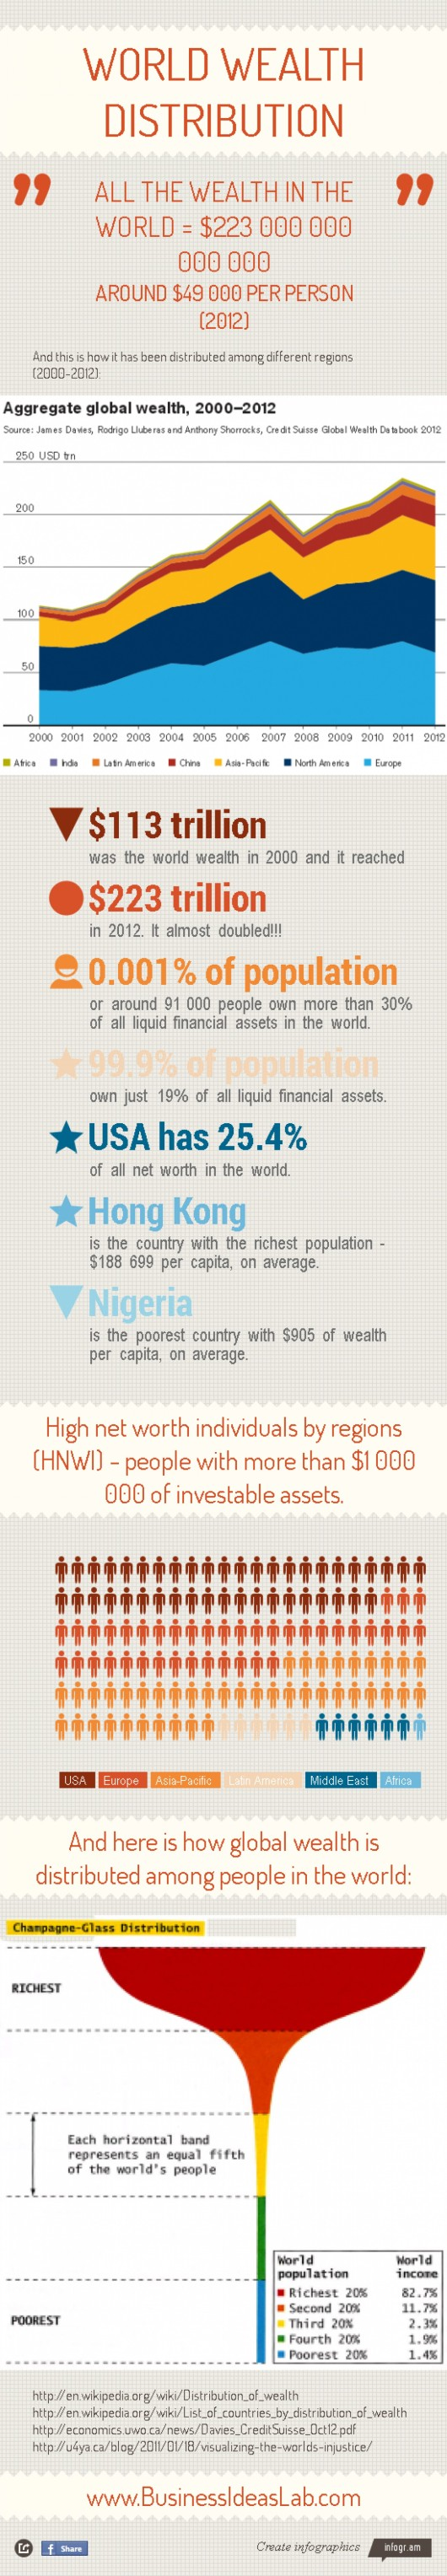 global-wealth-distribution_51fa36317032f_w1500